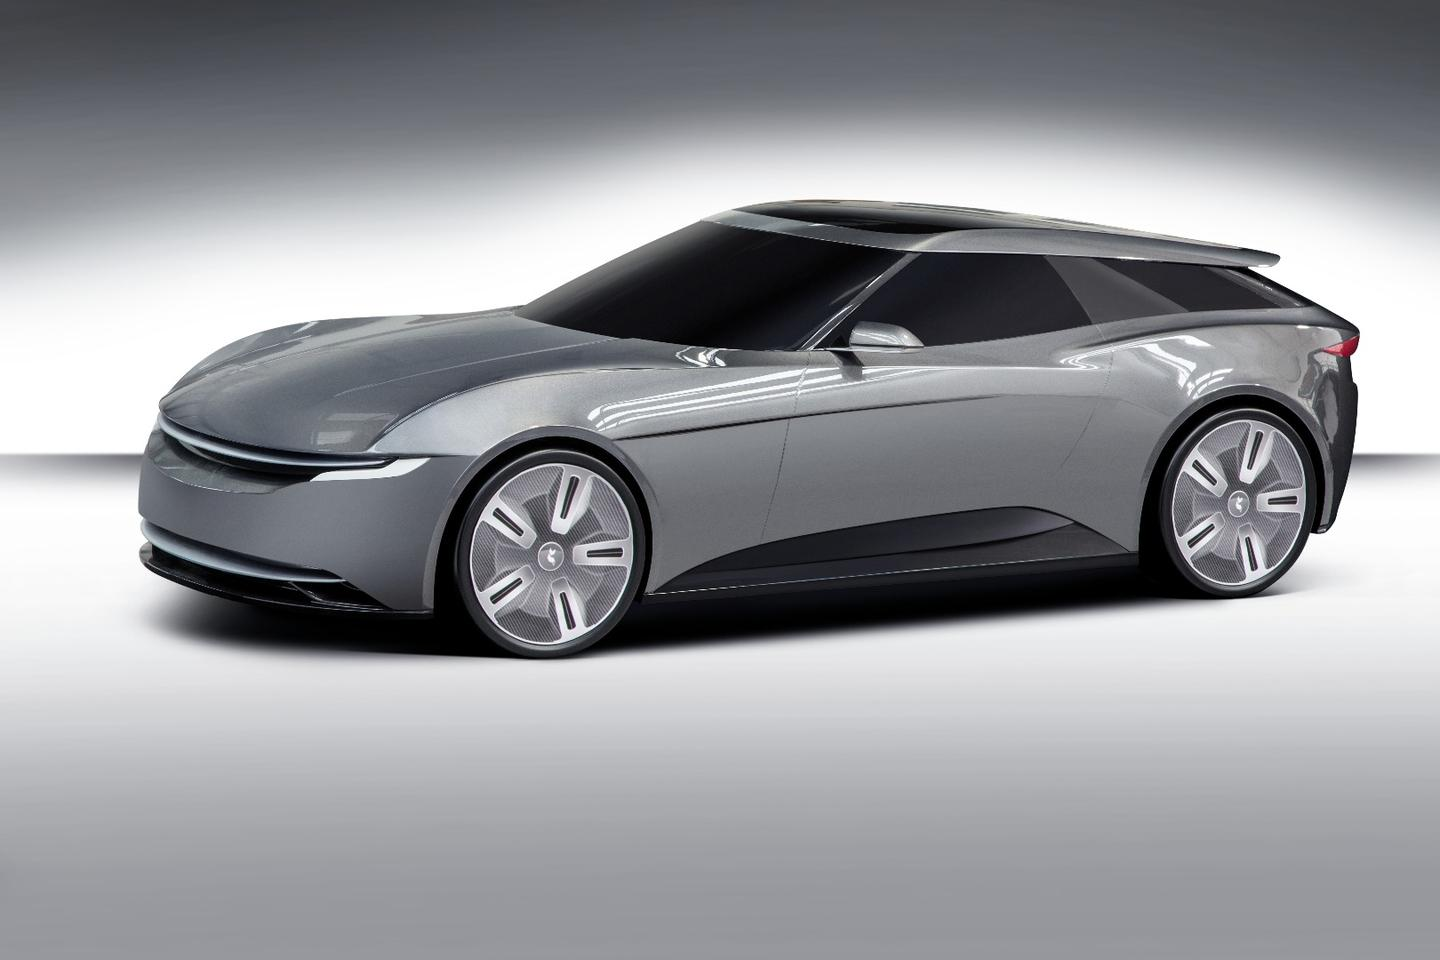 The Alcraft GT shooting brake is a concept for now, but that will change if David Alcraft gets his way